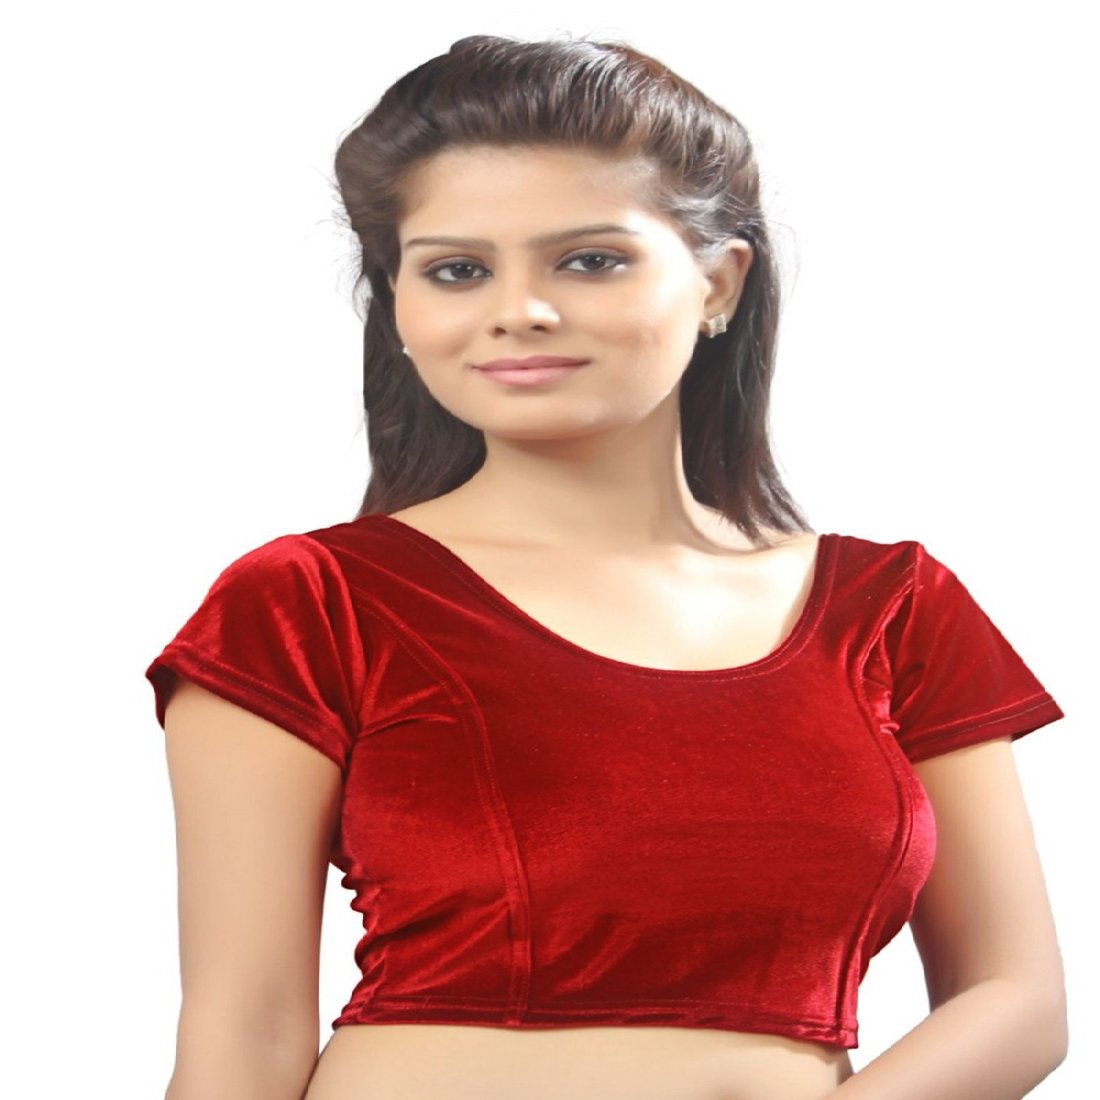 c66516f93b2a0c Biyu Red Cap Sleeve U-Neck Cotton Lycra Velvet stretchable Readymade saree  Blouse(RR047)  Amazon.in  Clothing   Accessories